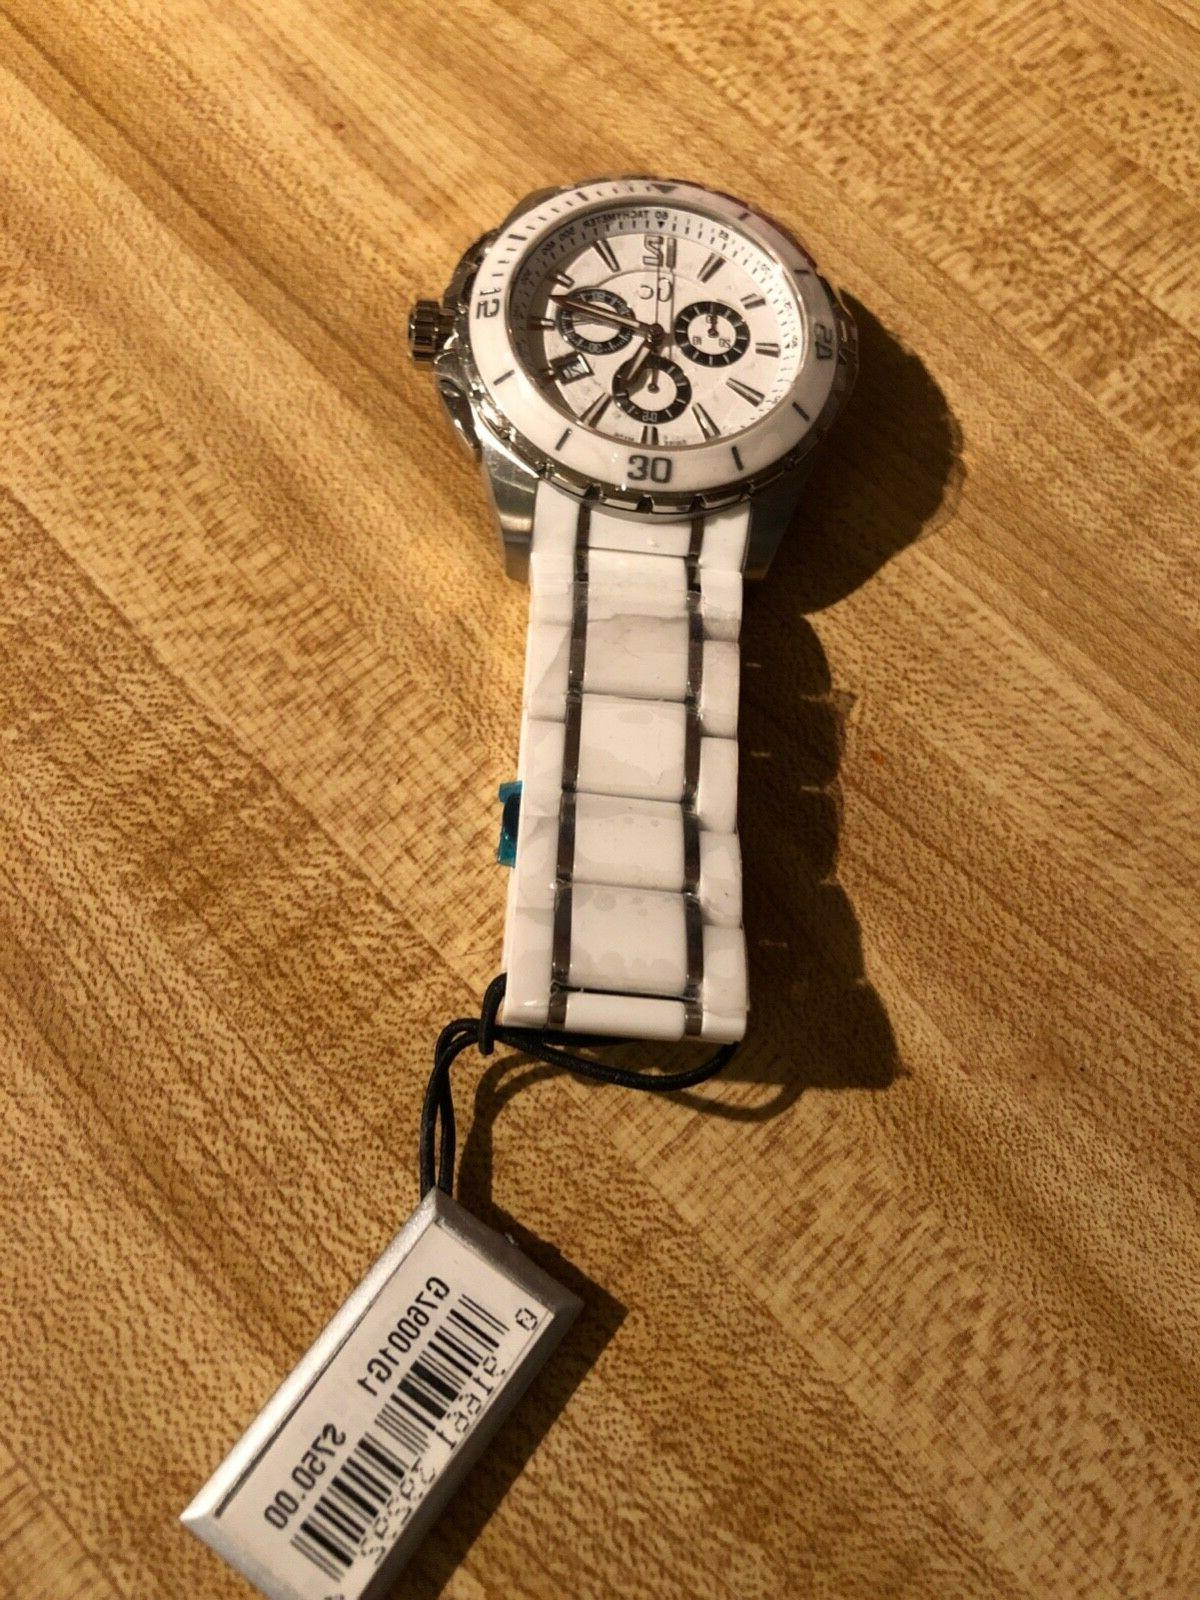 white and silver brand new diving watch